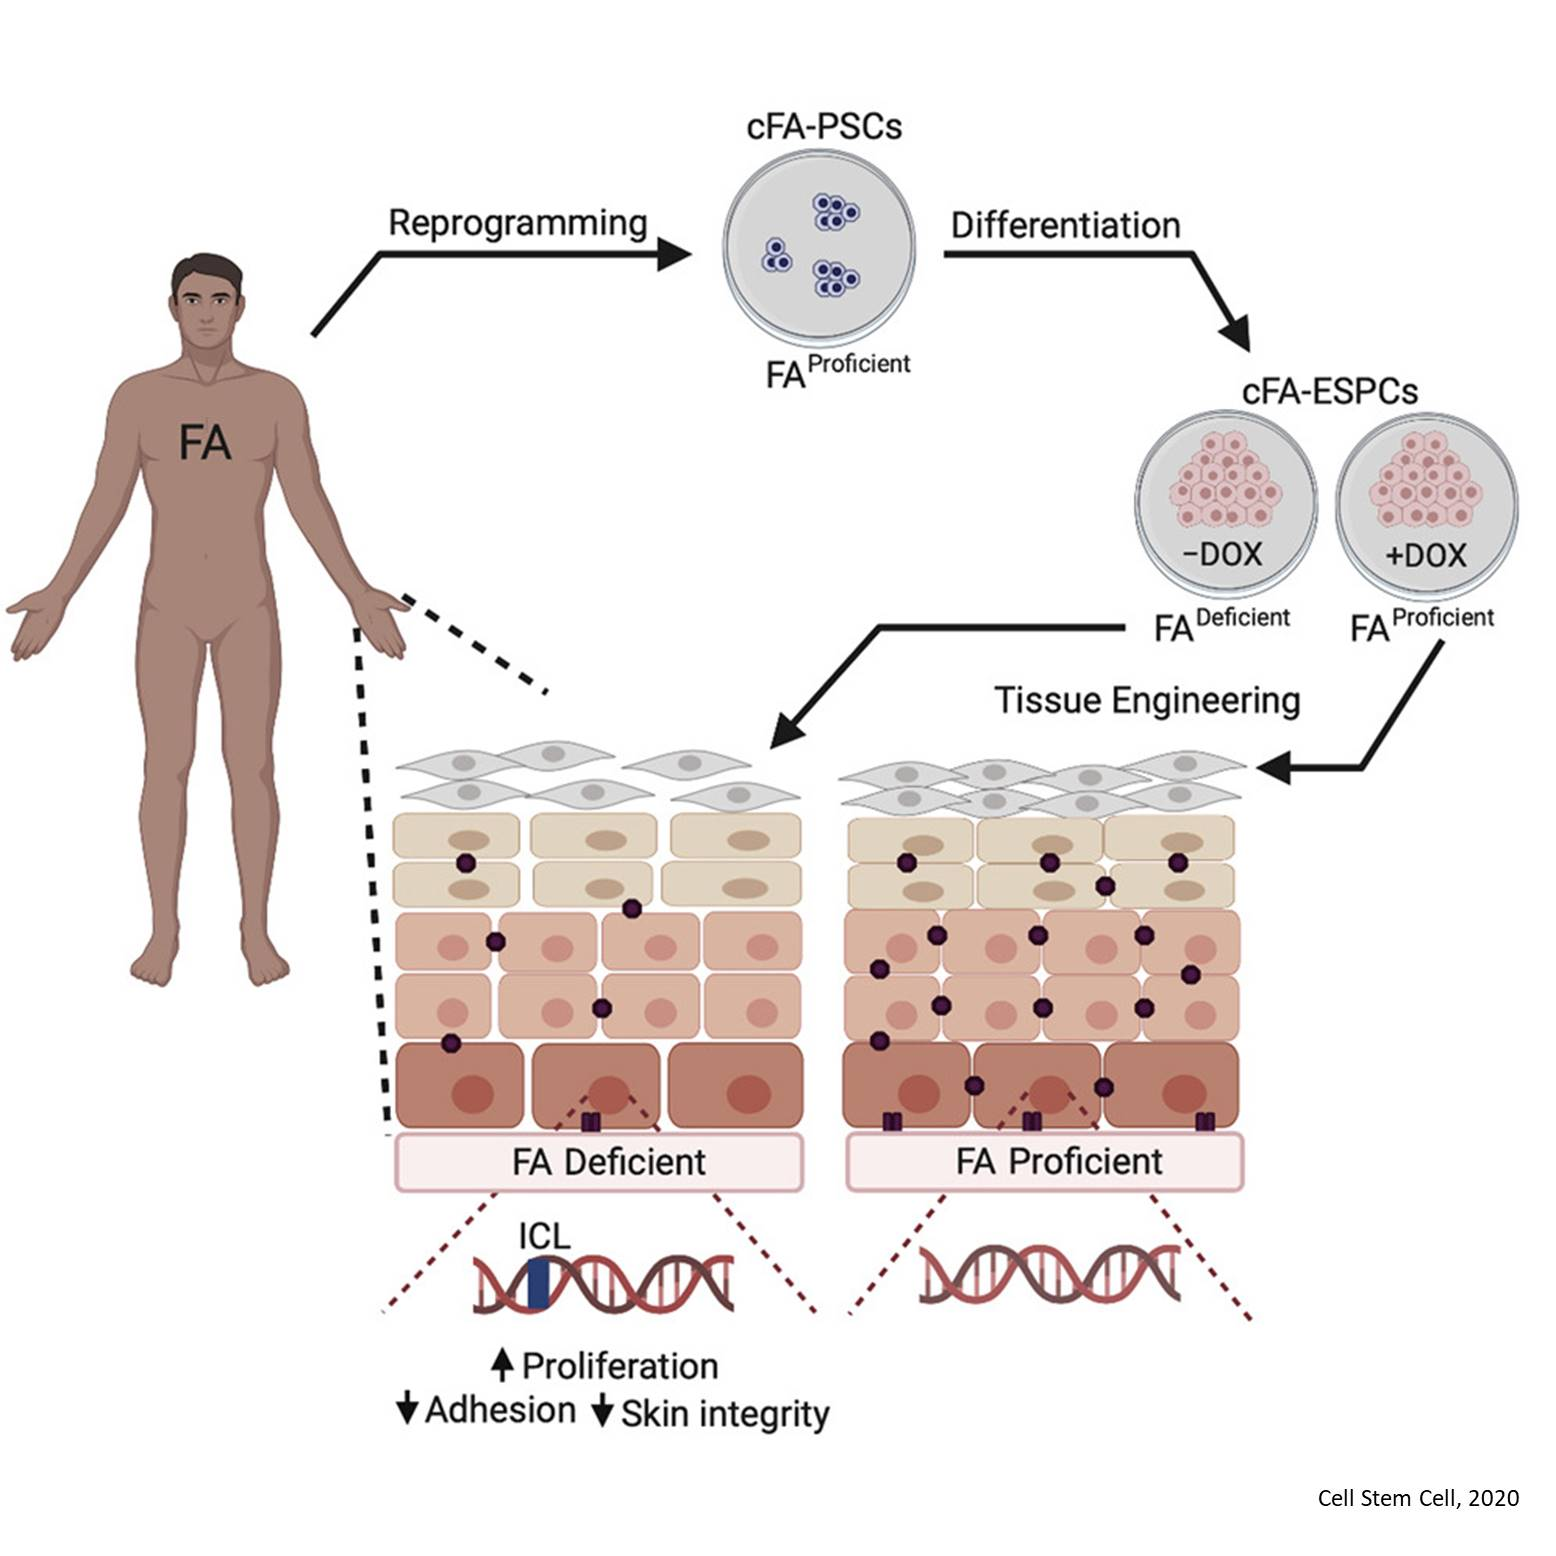 Inherited DNA Repair Defects Disrupt the Structure and Function of Human Skin